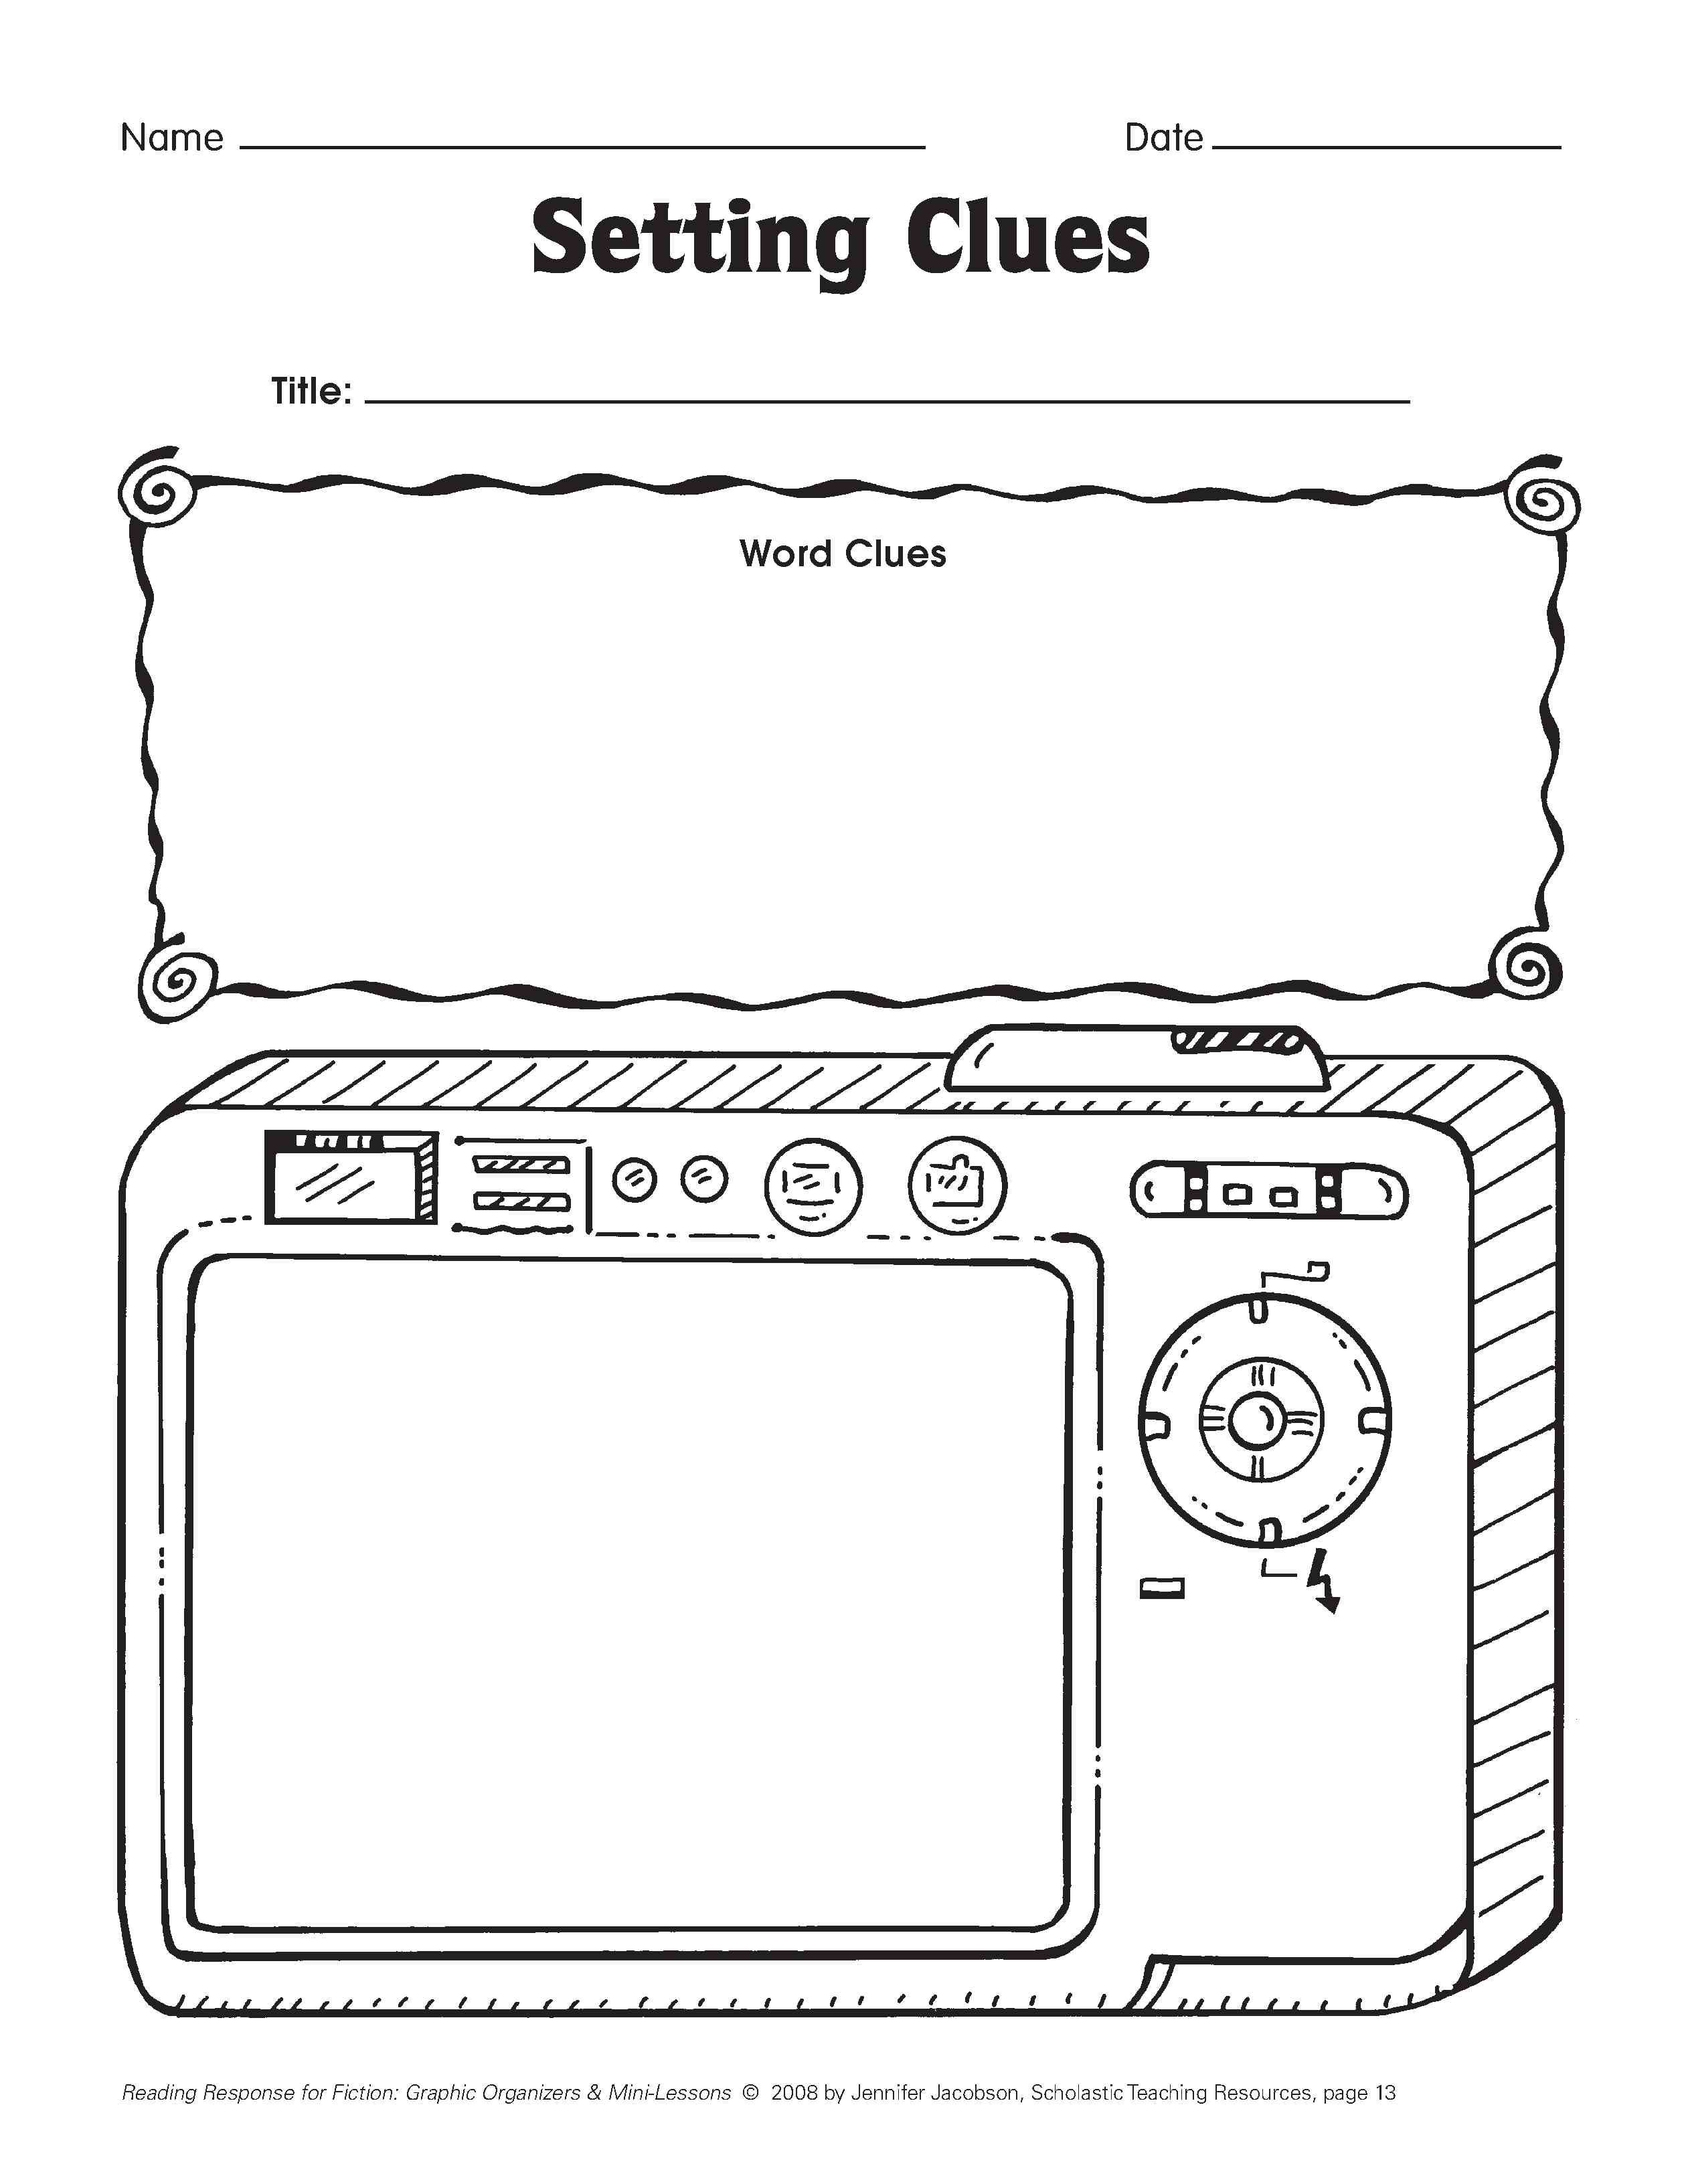 Worksheets Scholastic Printable Worksheets five minute reading responses scholastic com free printable on setting using words from the